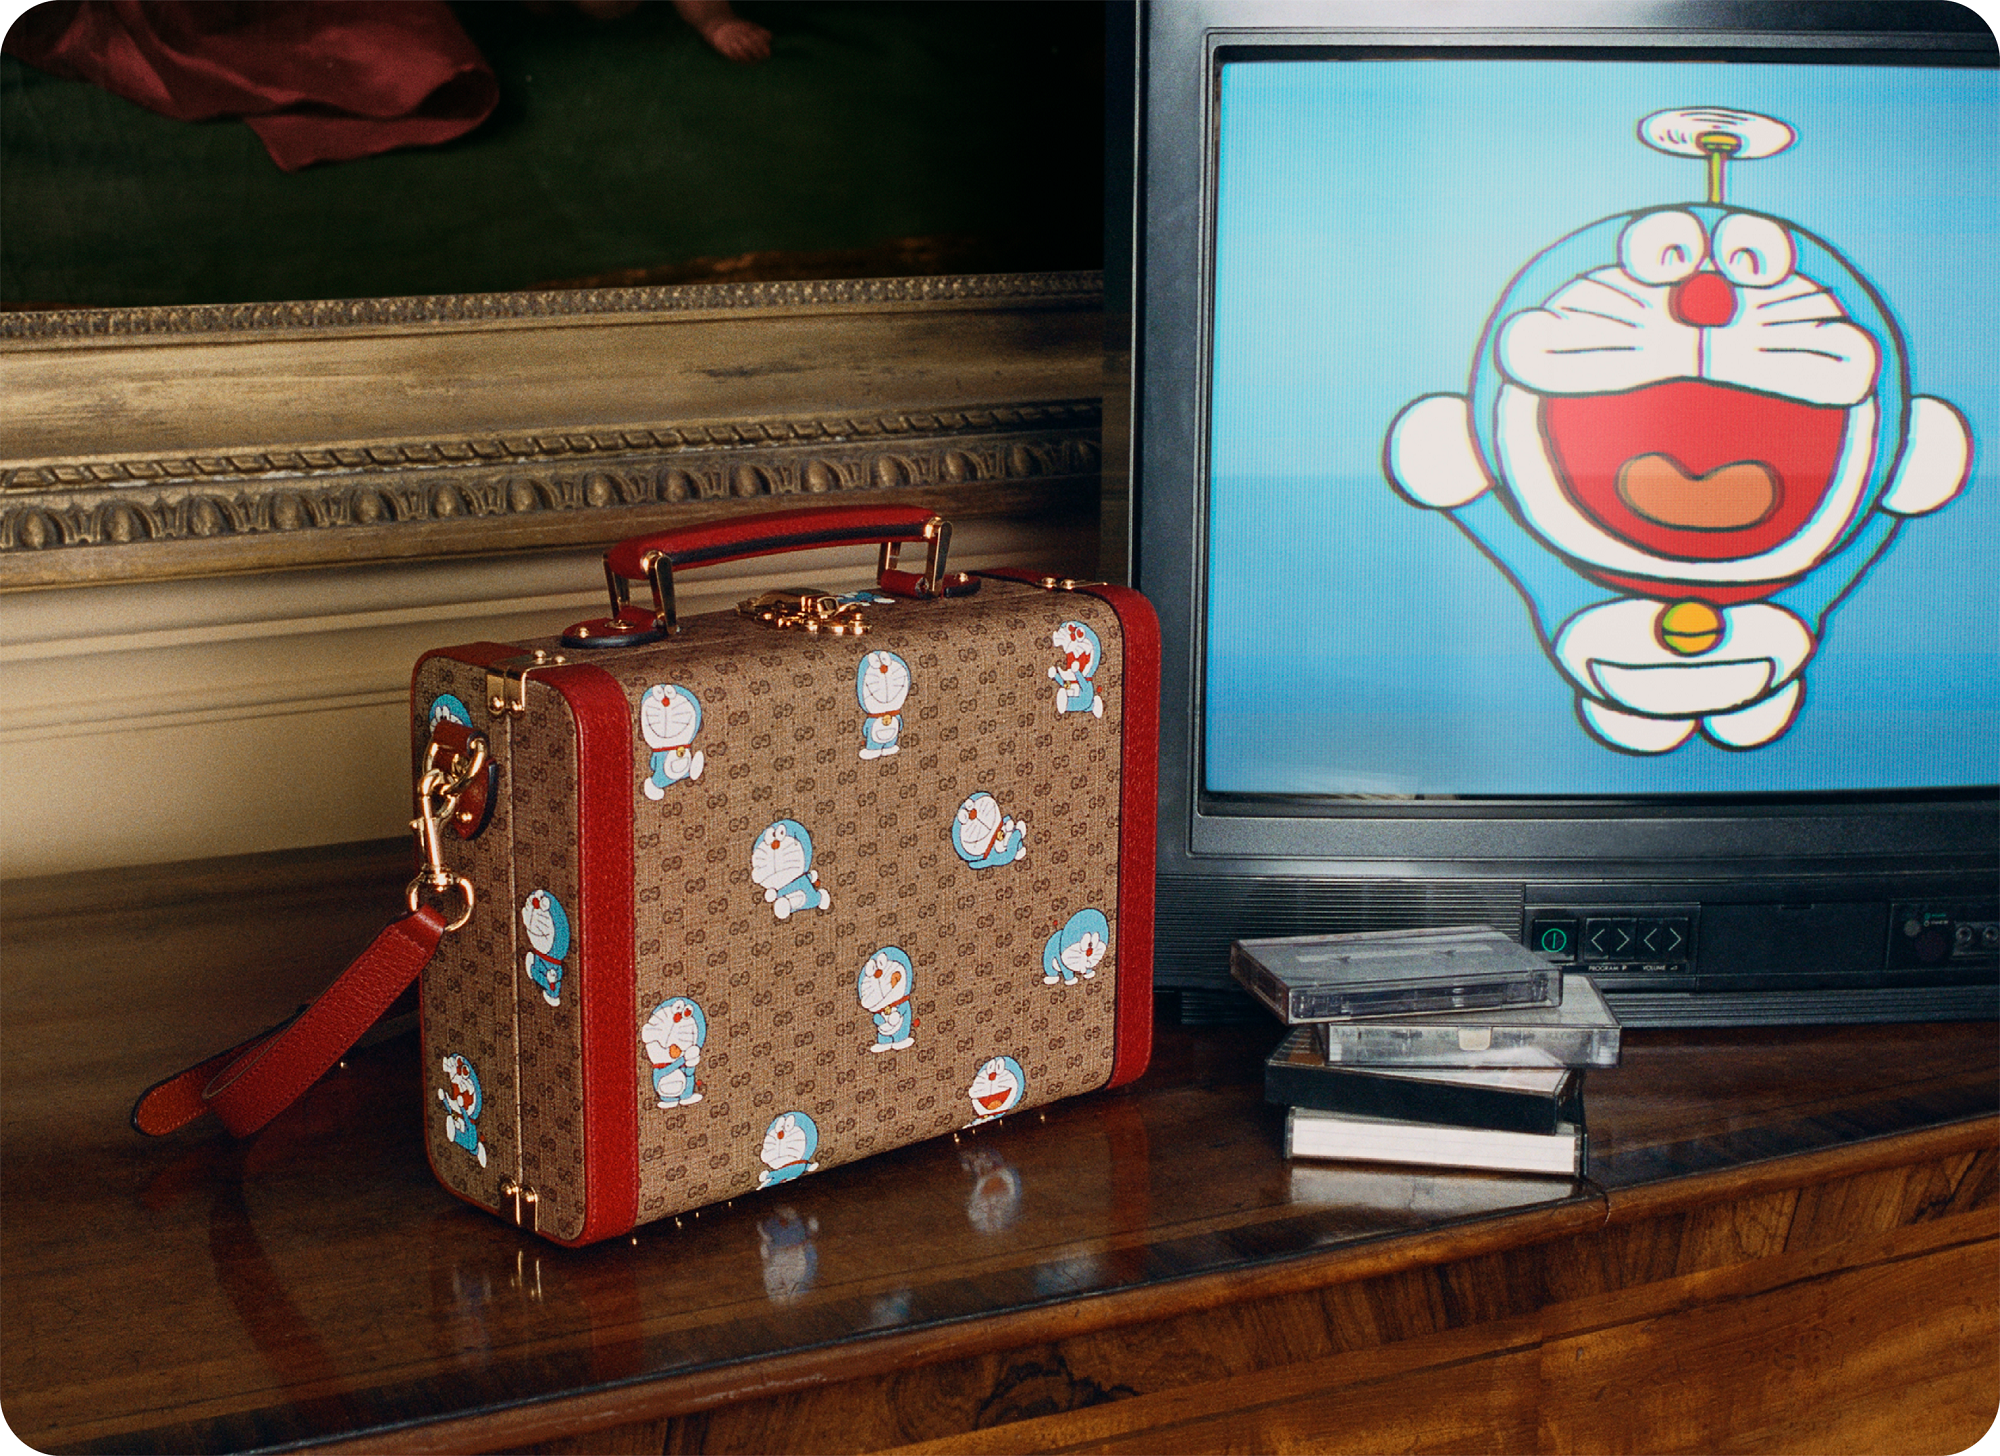 Gucci Celebrates Chinese New Year 2021 With A Special Doraemon Collaboration